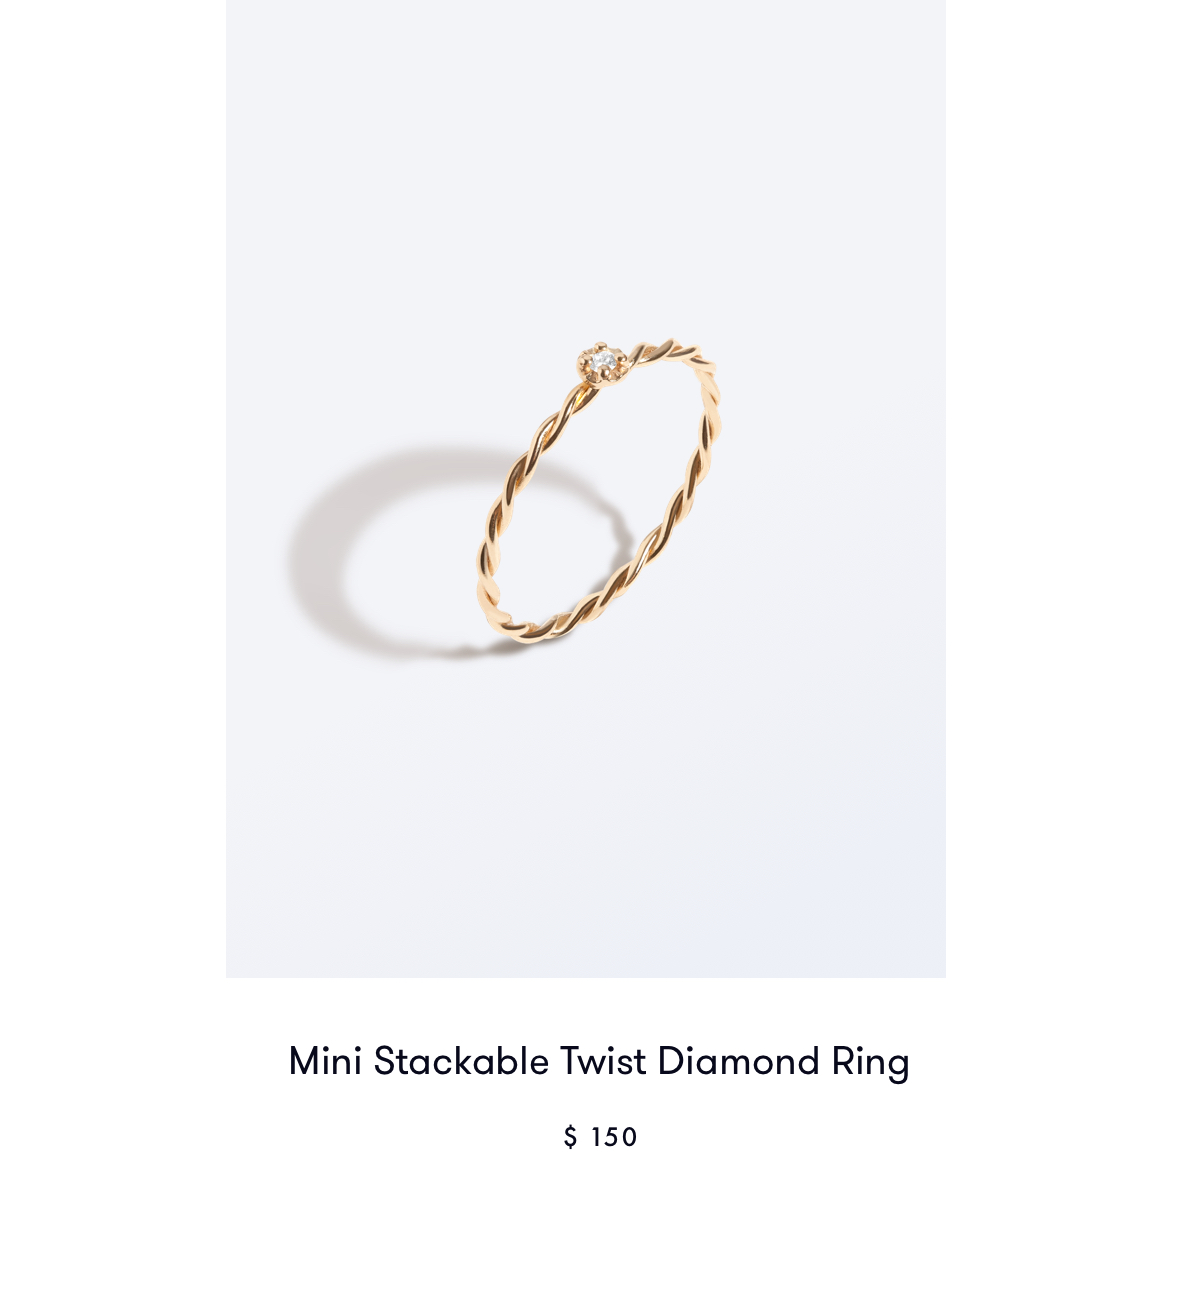 Mini Stackable Twist Diamond Ring